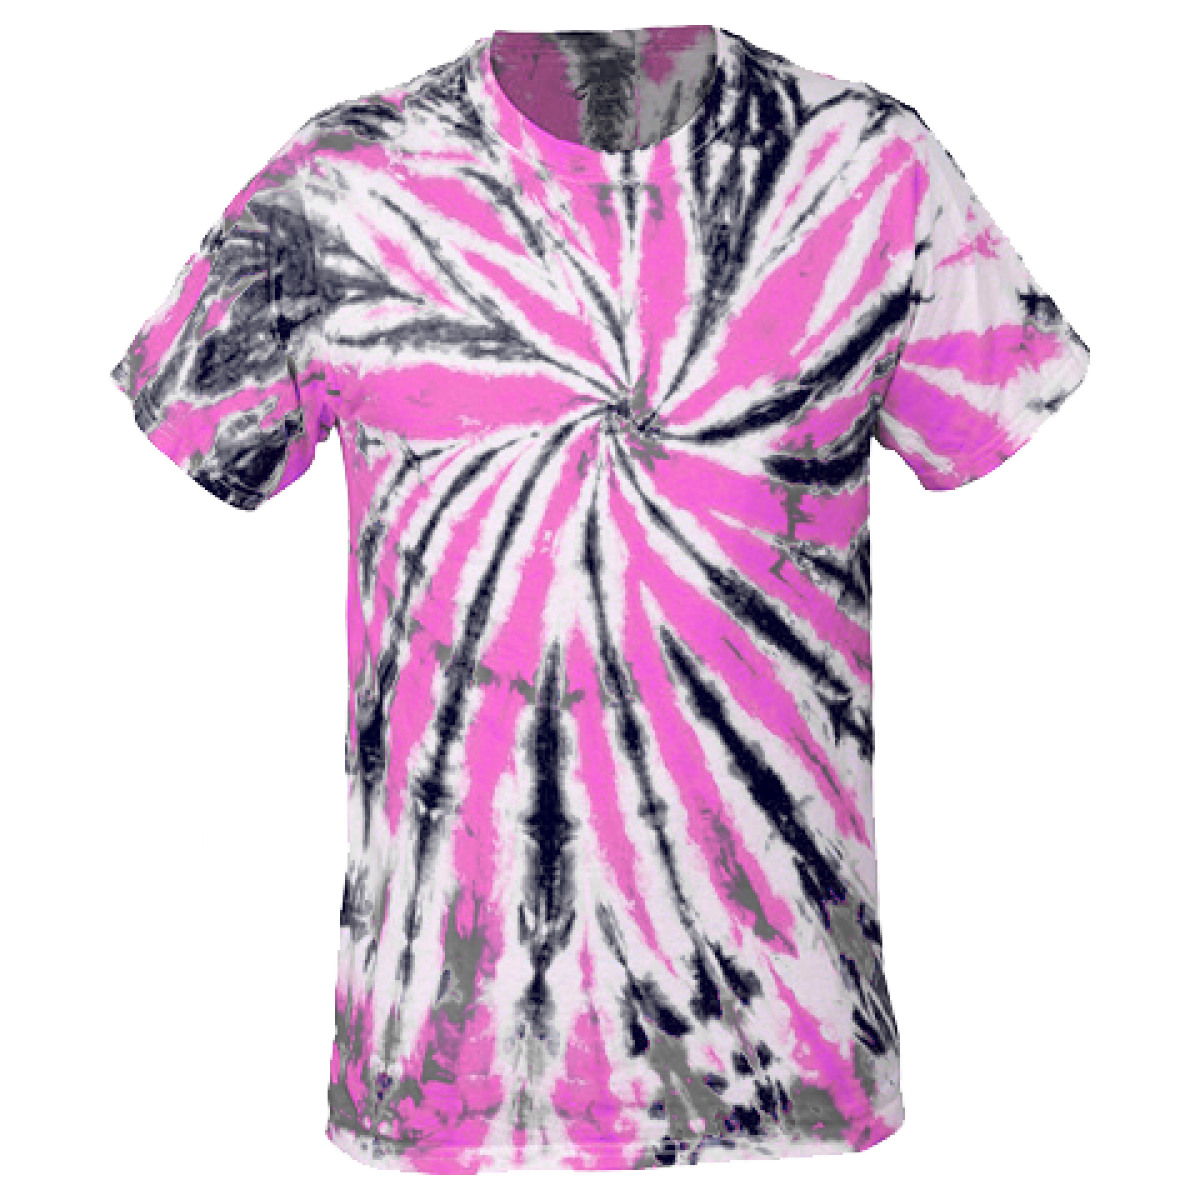 Multi-Color Tie-Dye Tee -Pink/Black-YL